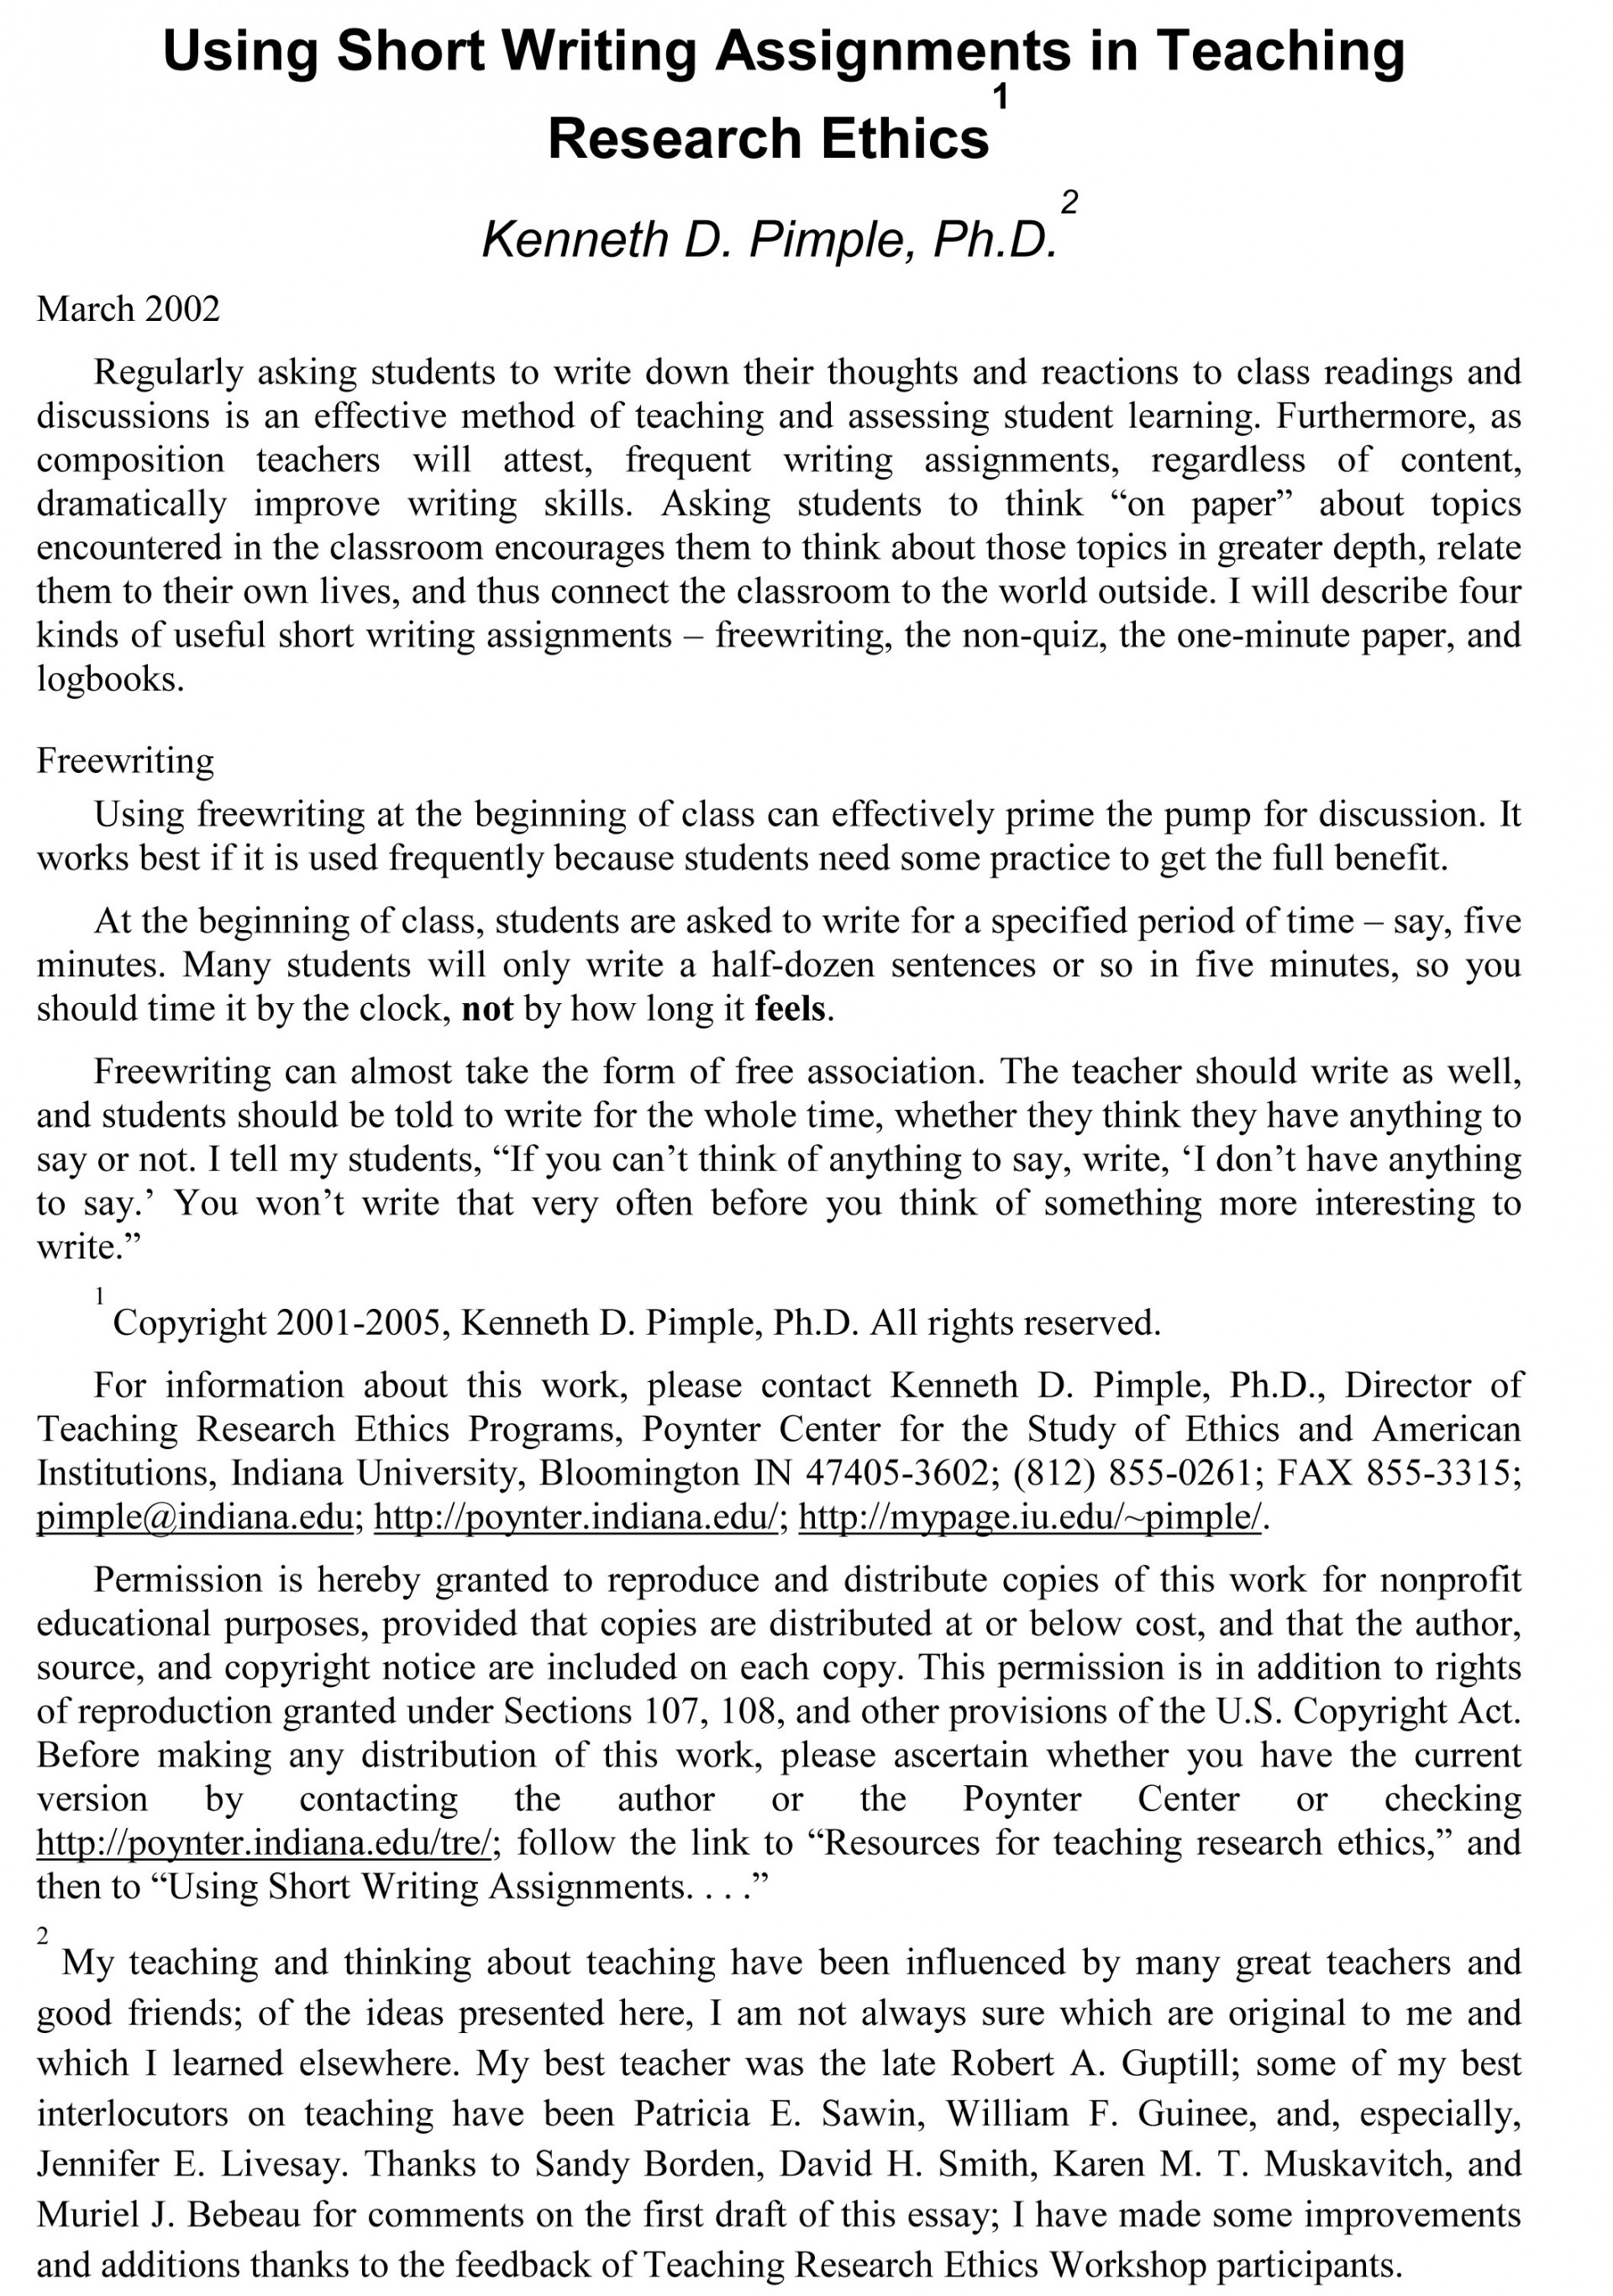 012 Essay Example Sample Teaching Remarkable Diversity Prompts Paper Ideas Topics 1920